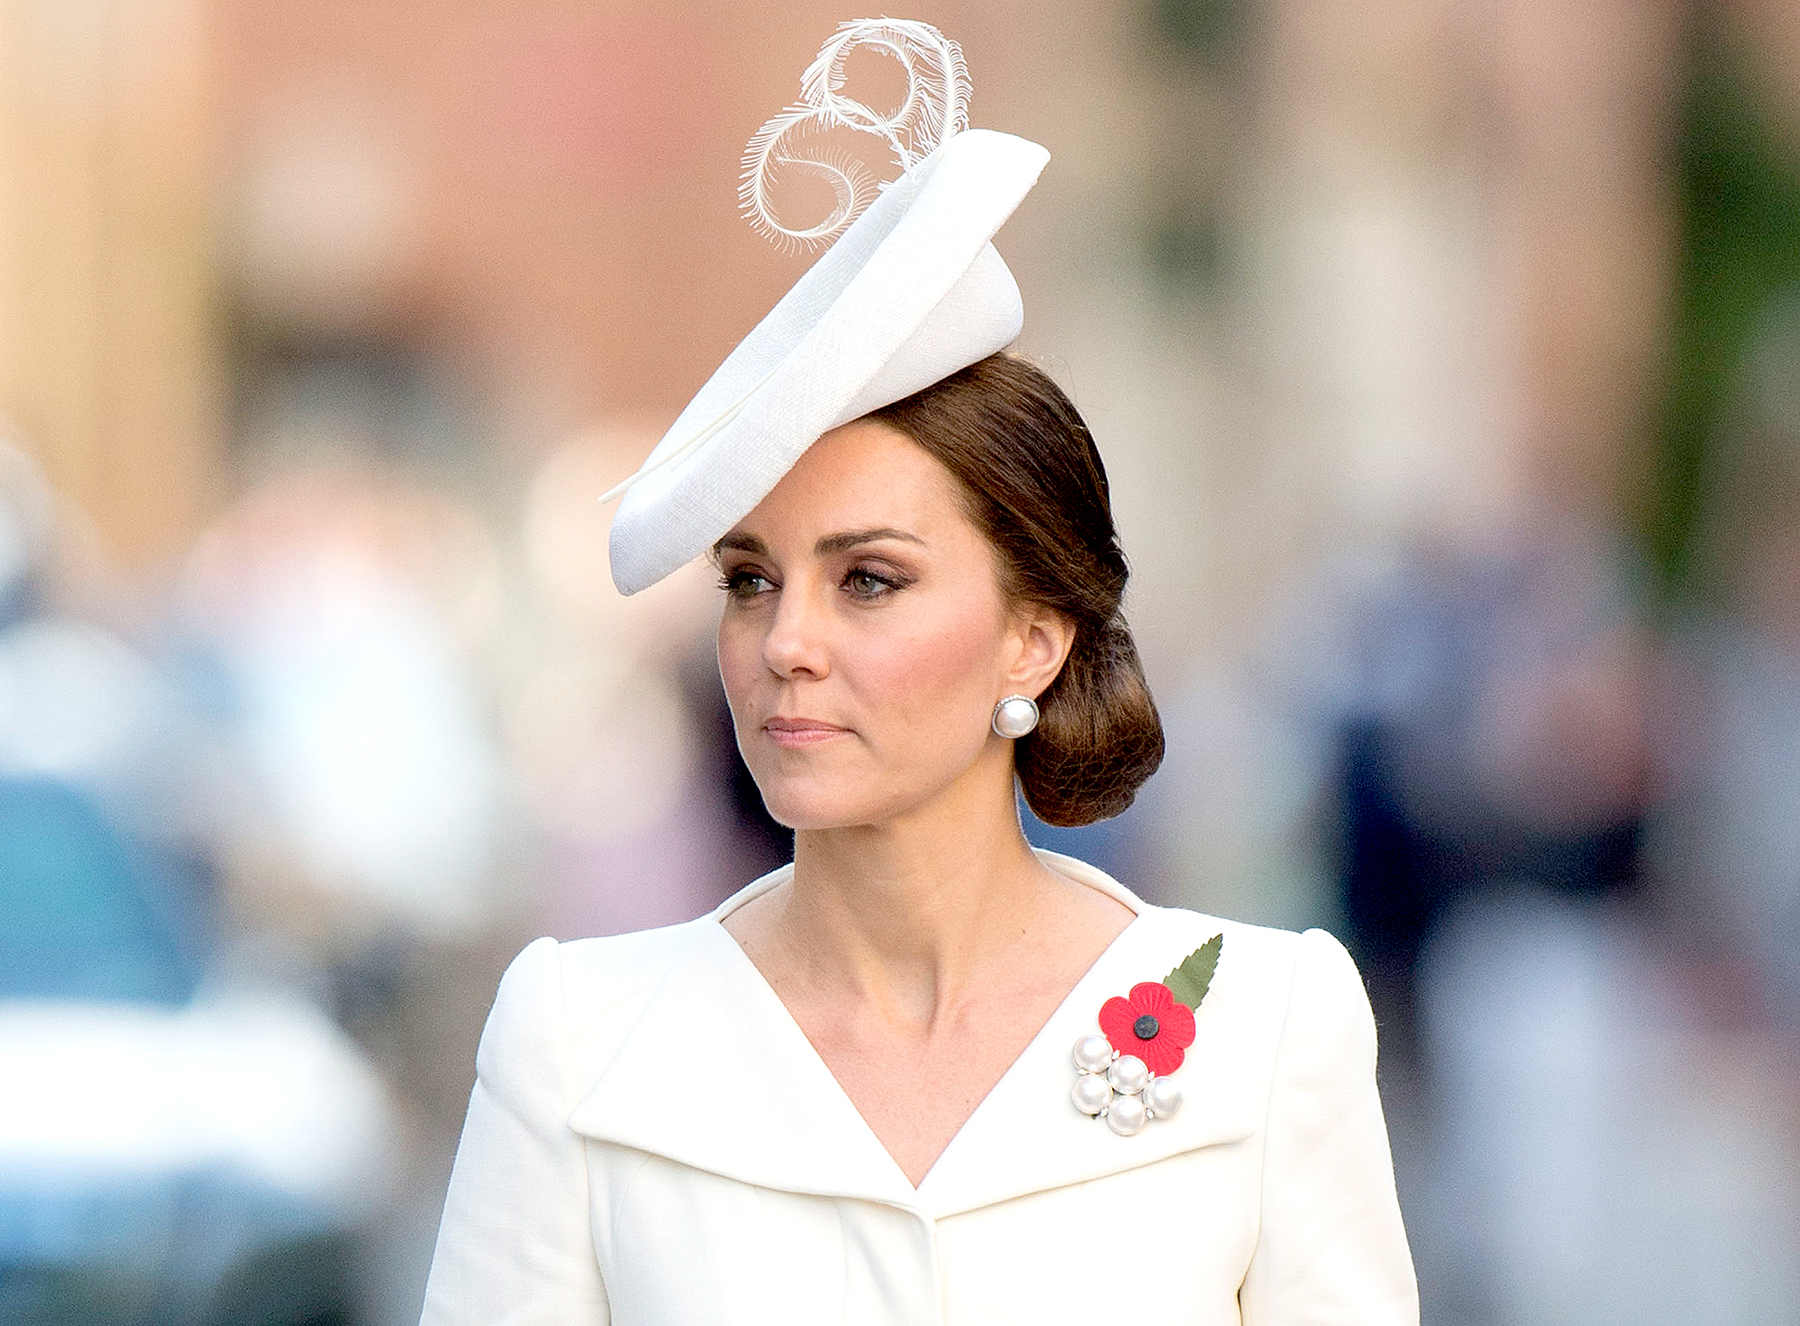 Catherine, Duchess of Cambridge attends the Last Post ceremony at the Commonwealth War Graves Commission Ypres (Menin Gate) Memorial on July 30, 2017 in Ypres, Belgium.